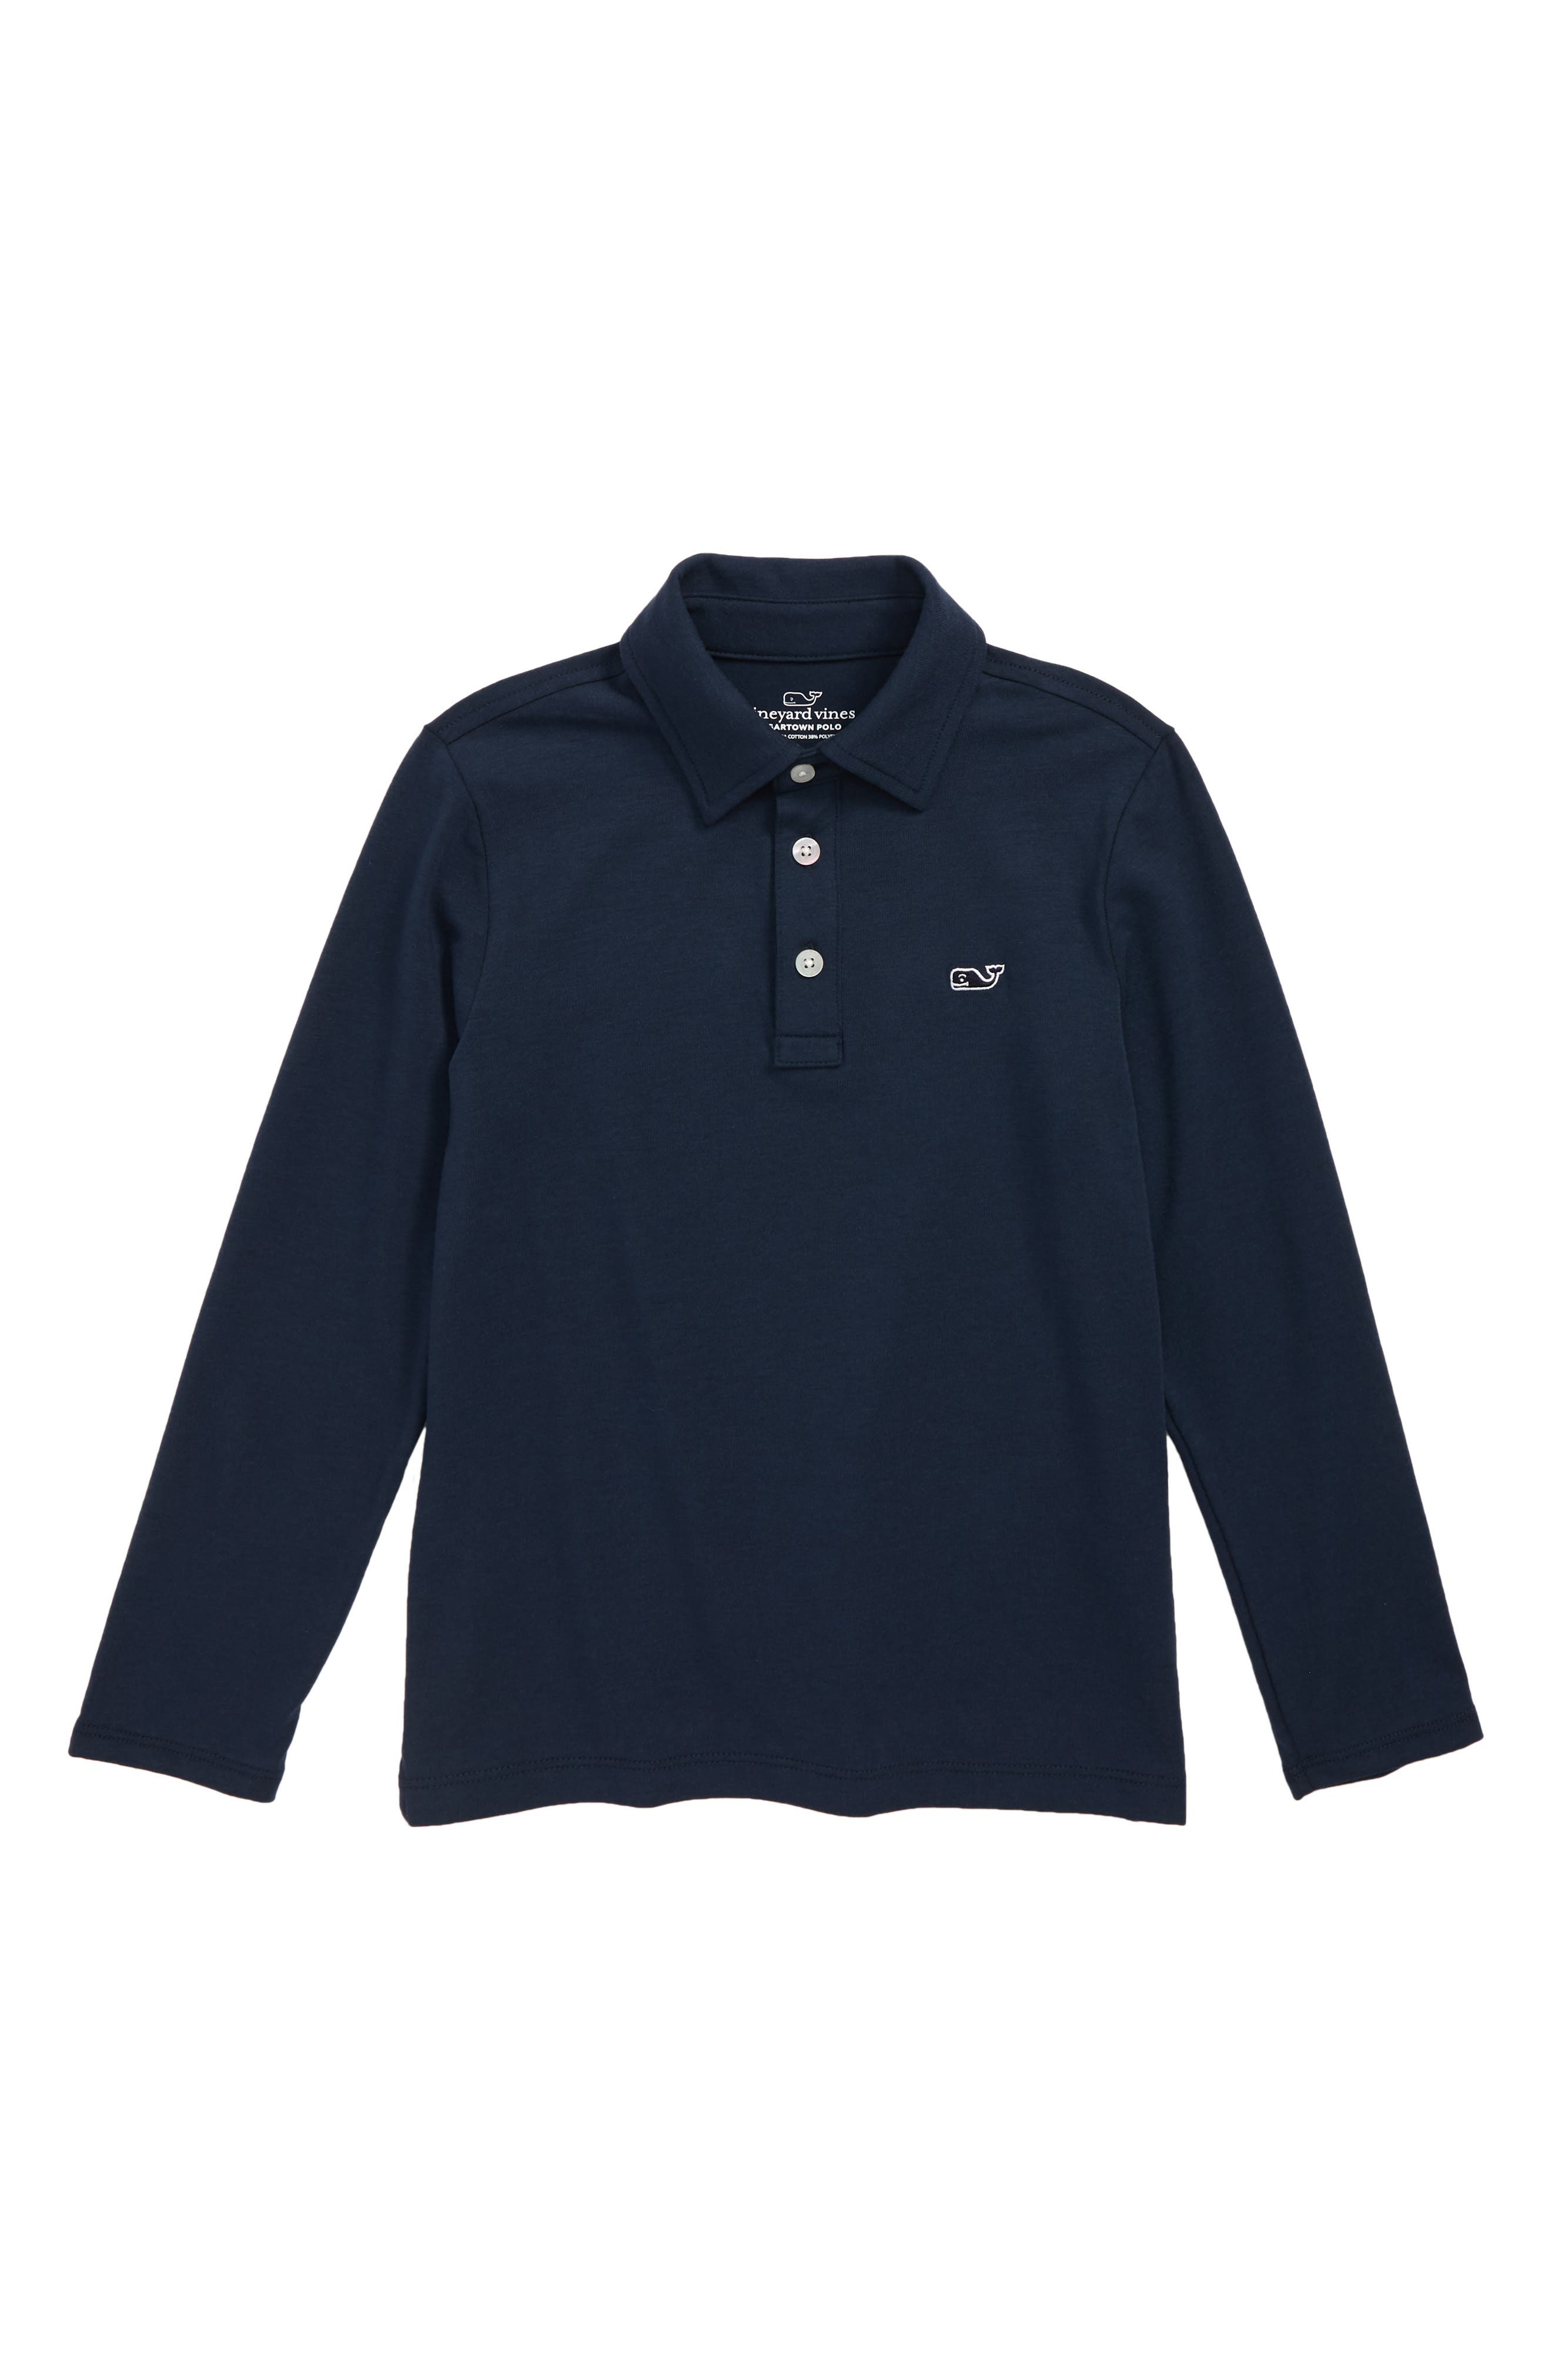 Edgartown Polo,                             Main thumbnail 1, color,                             VINEYARD NAVY